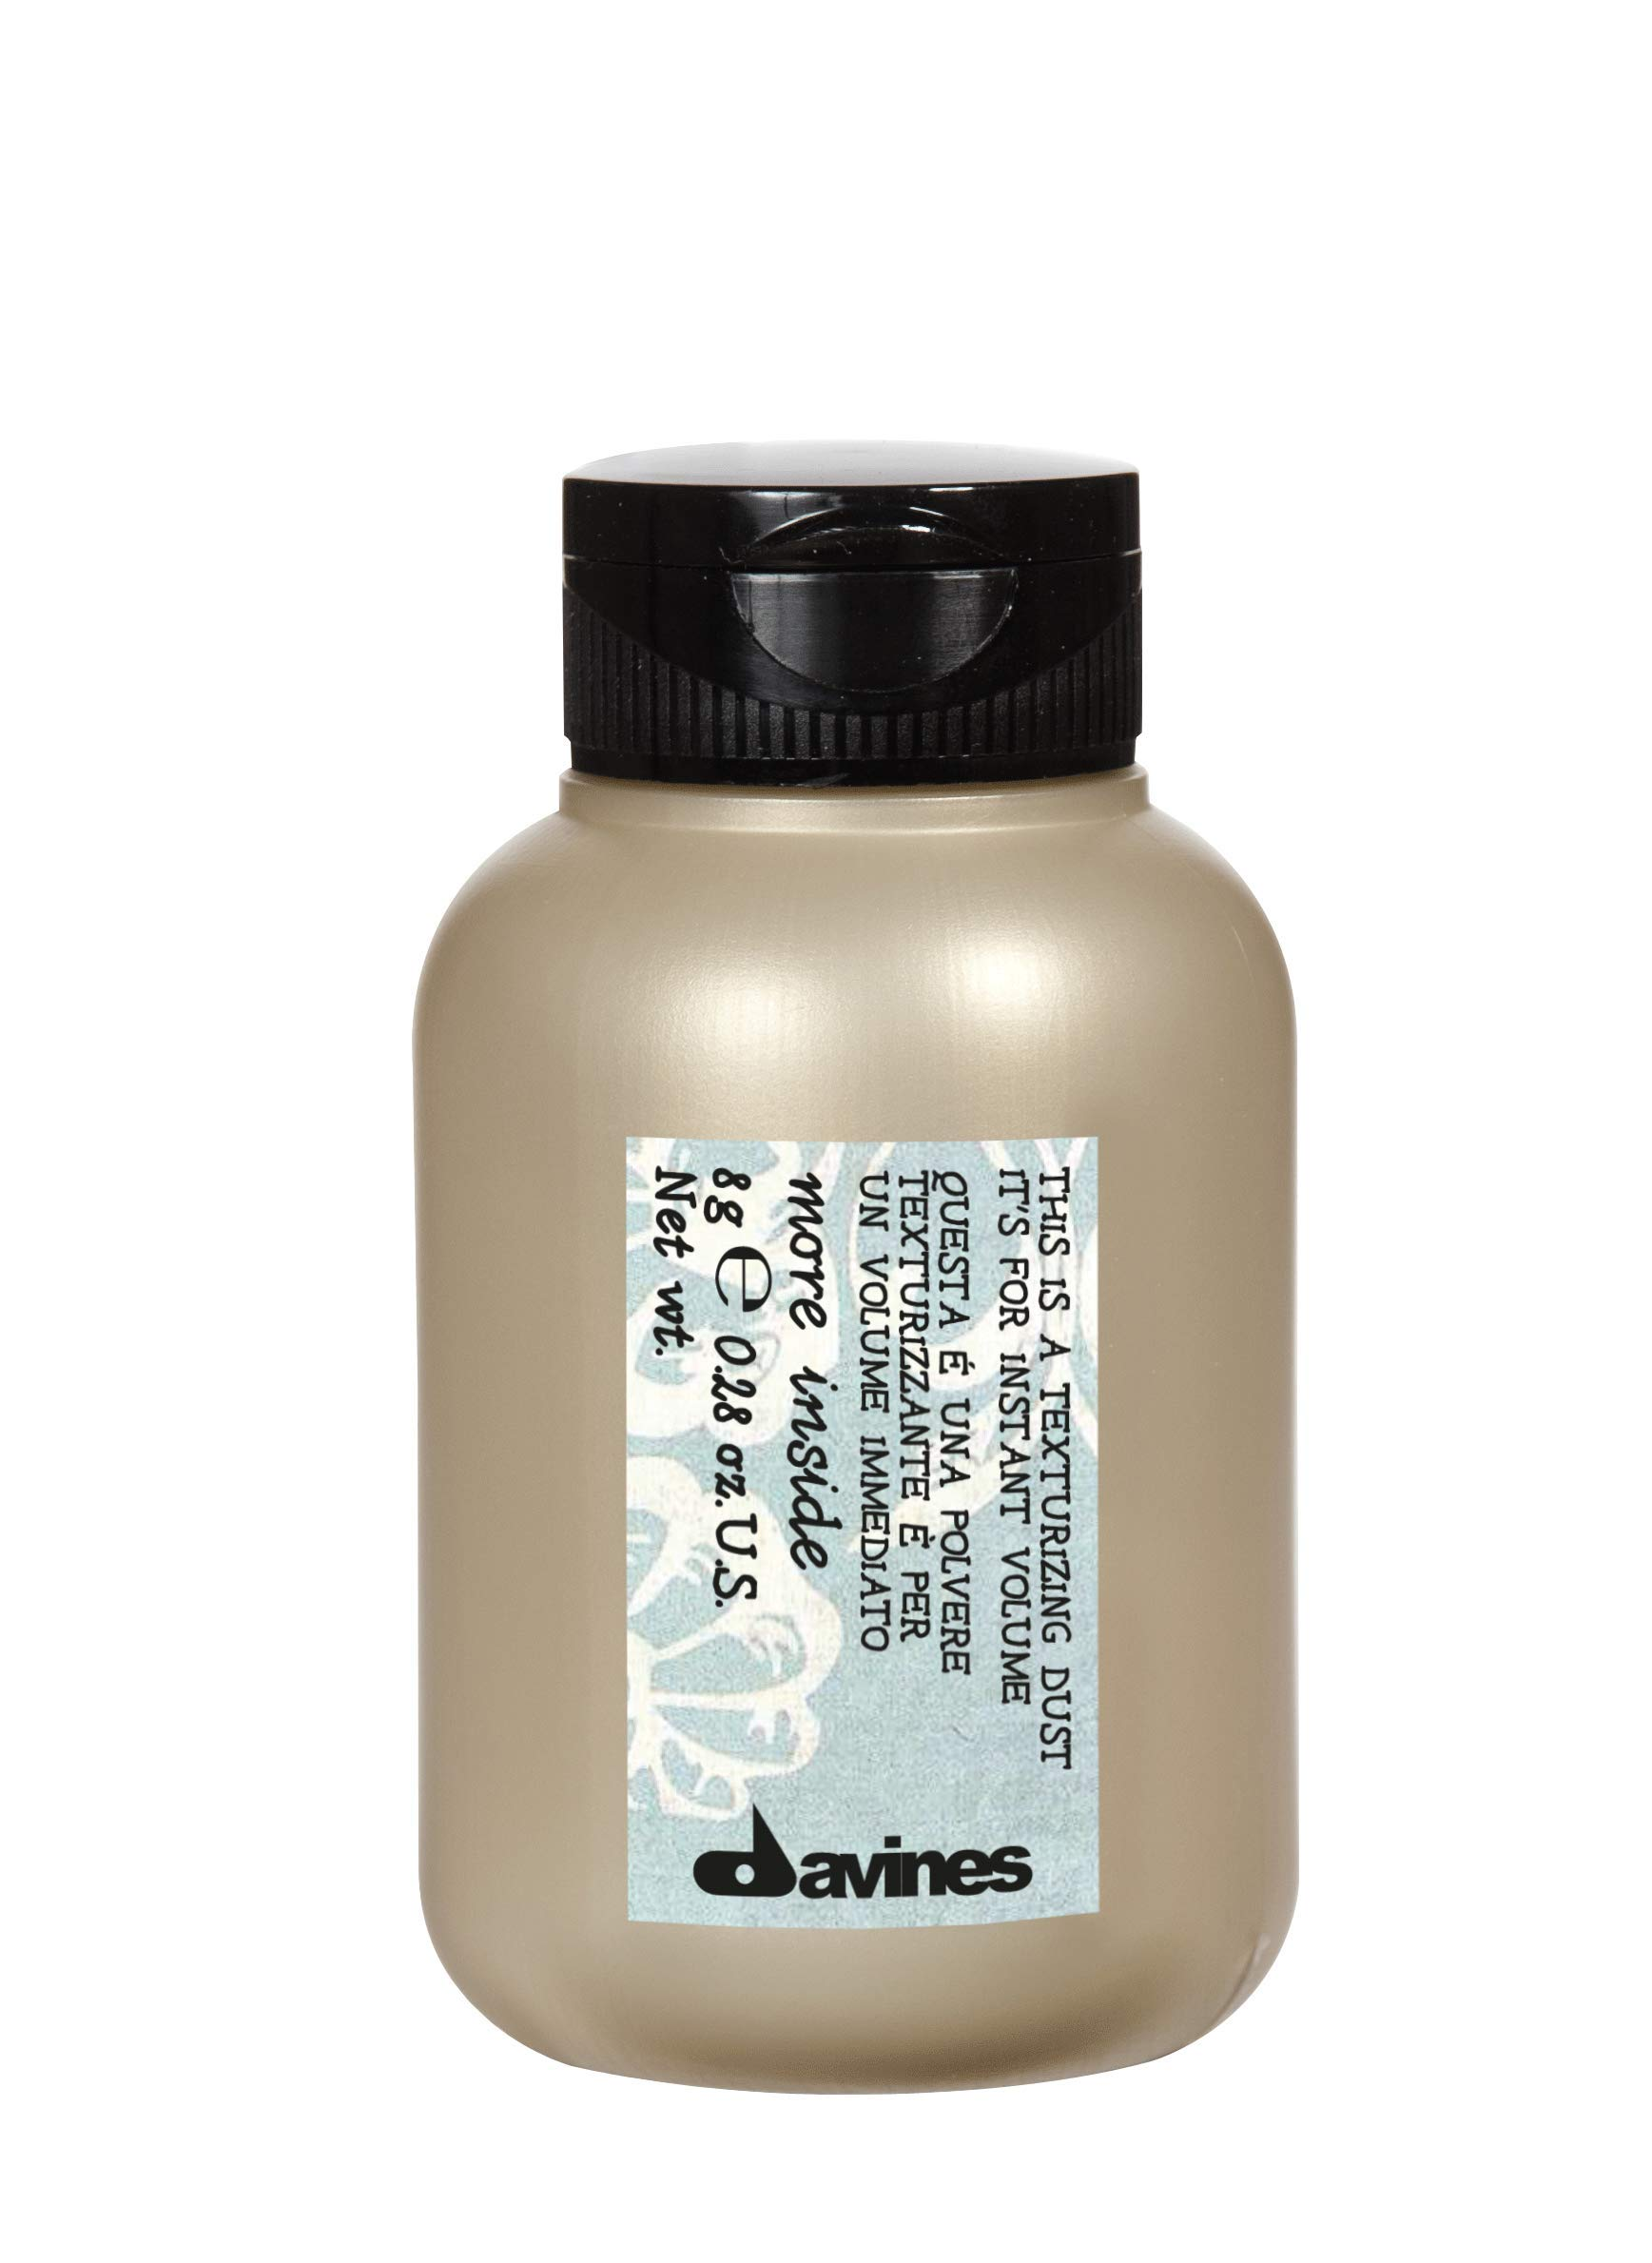 Davines More Inside Texturizing Dust 8 g (12085)